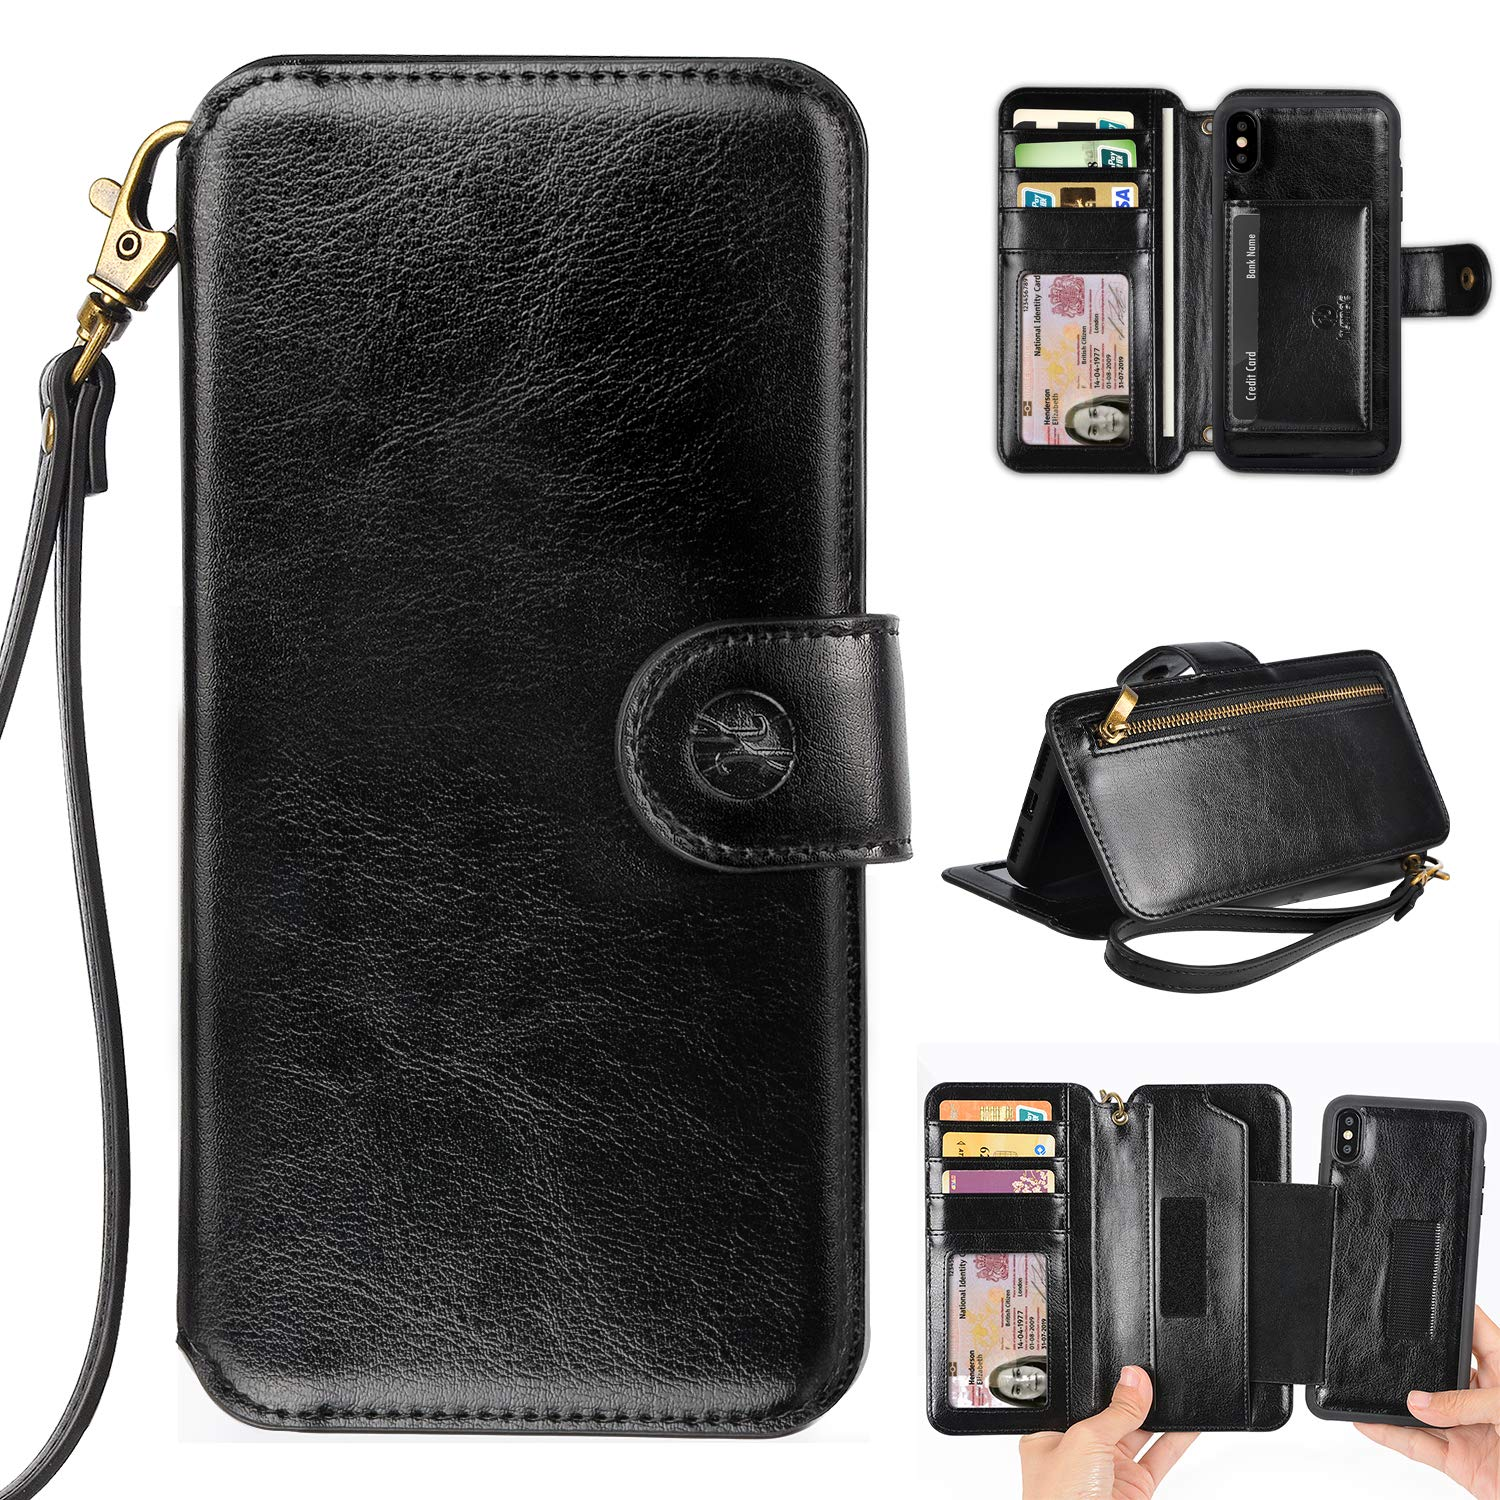 san francisco 50885 27b91 Phone Wallet Case Clutch Compatible with iPhone Xs Max 6.5 Apple Phone -  Wristlet Case Boutique Quality Vegan Leather Black - with Card Holder  Clutch ...